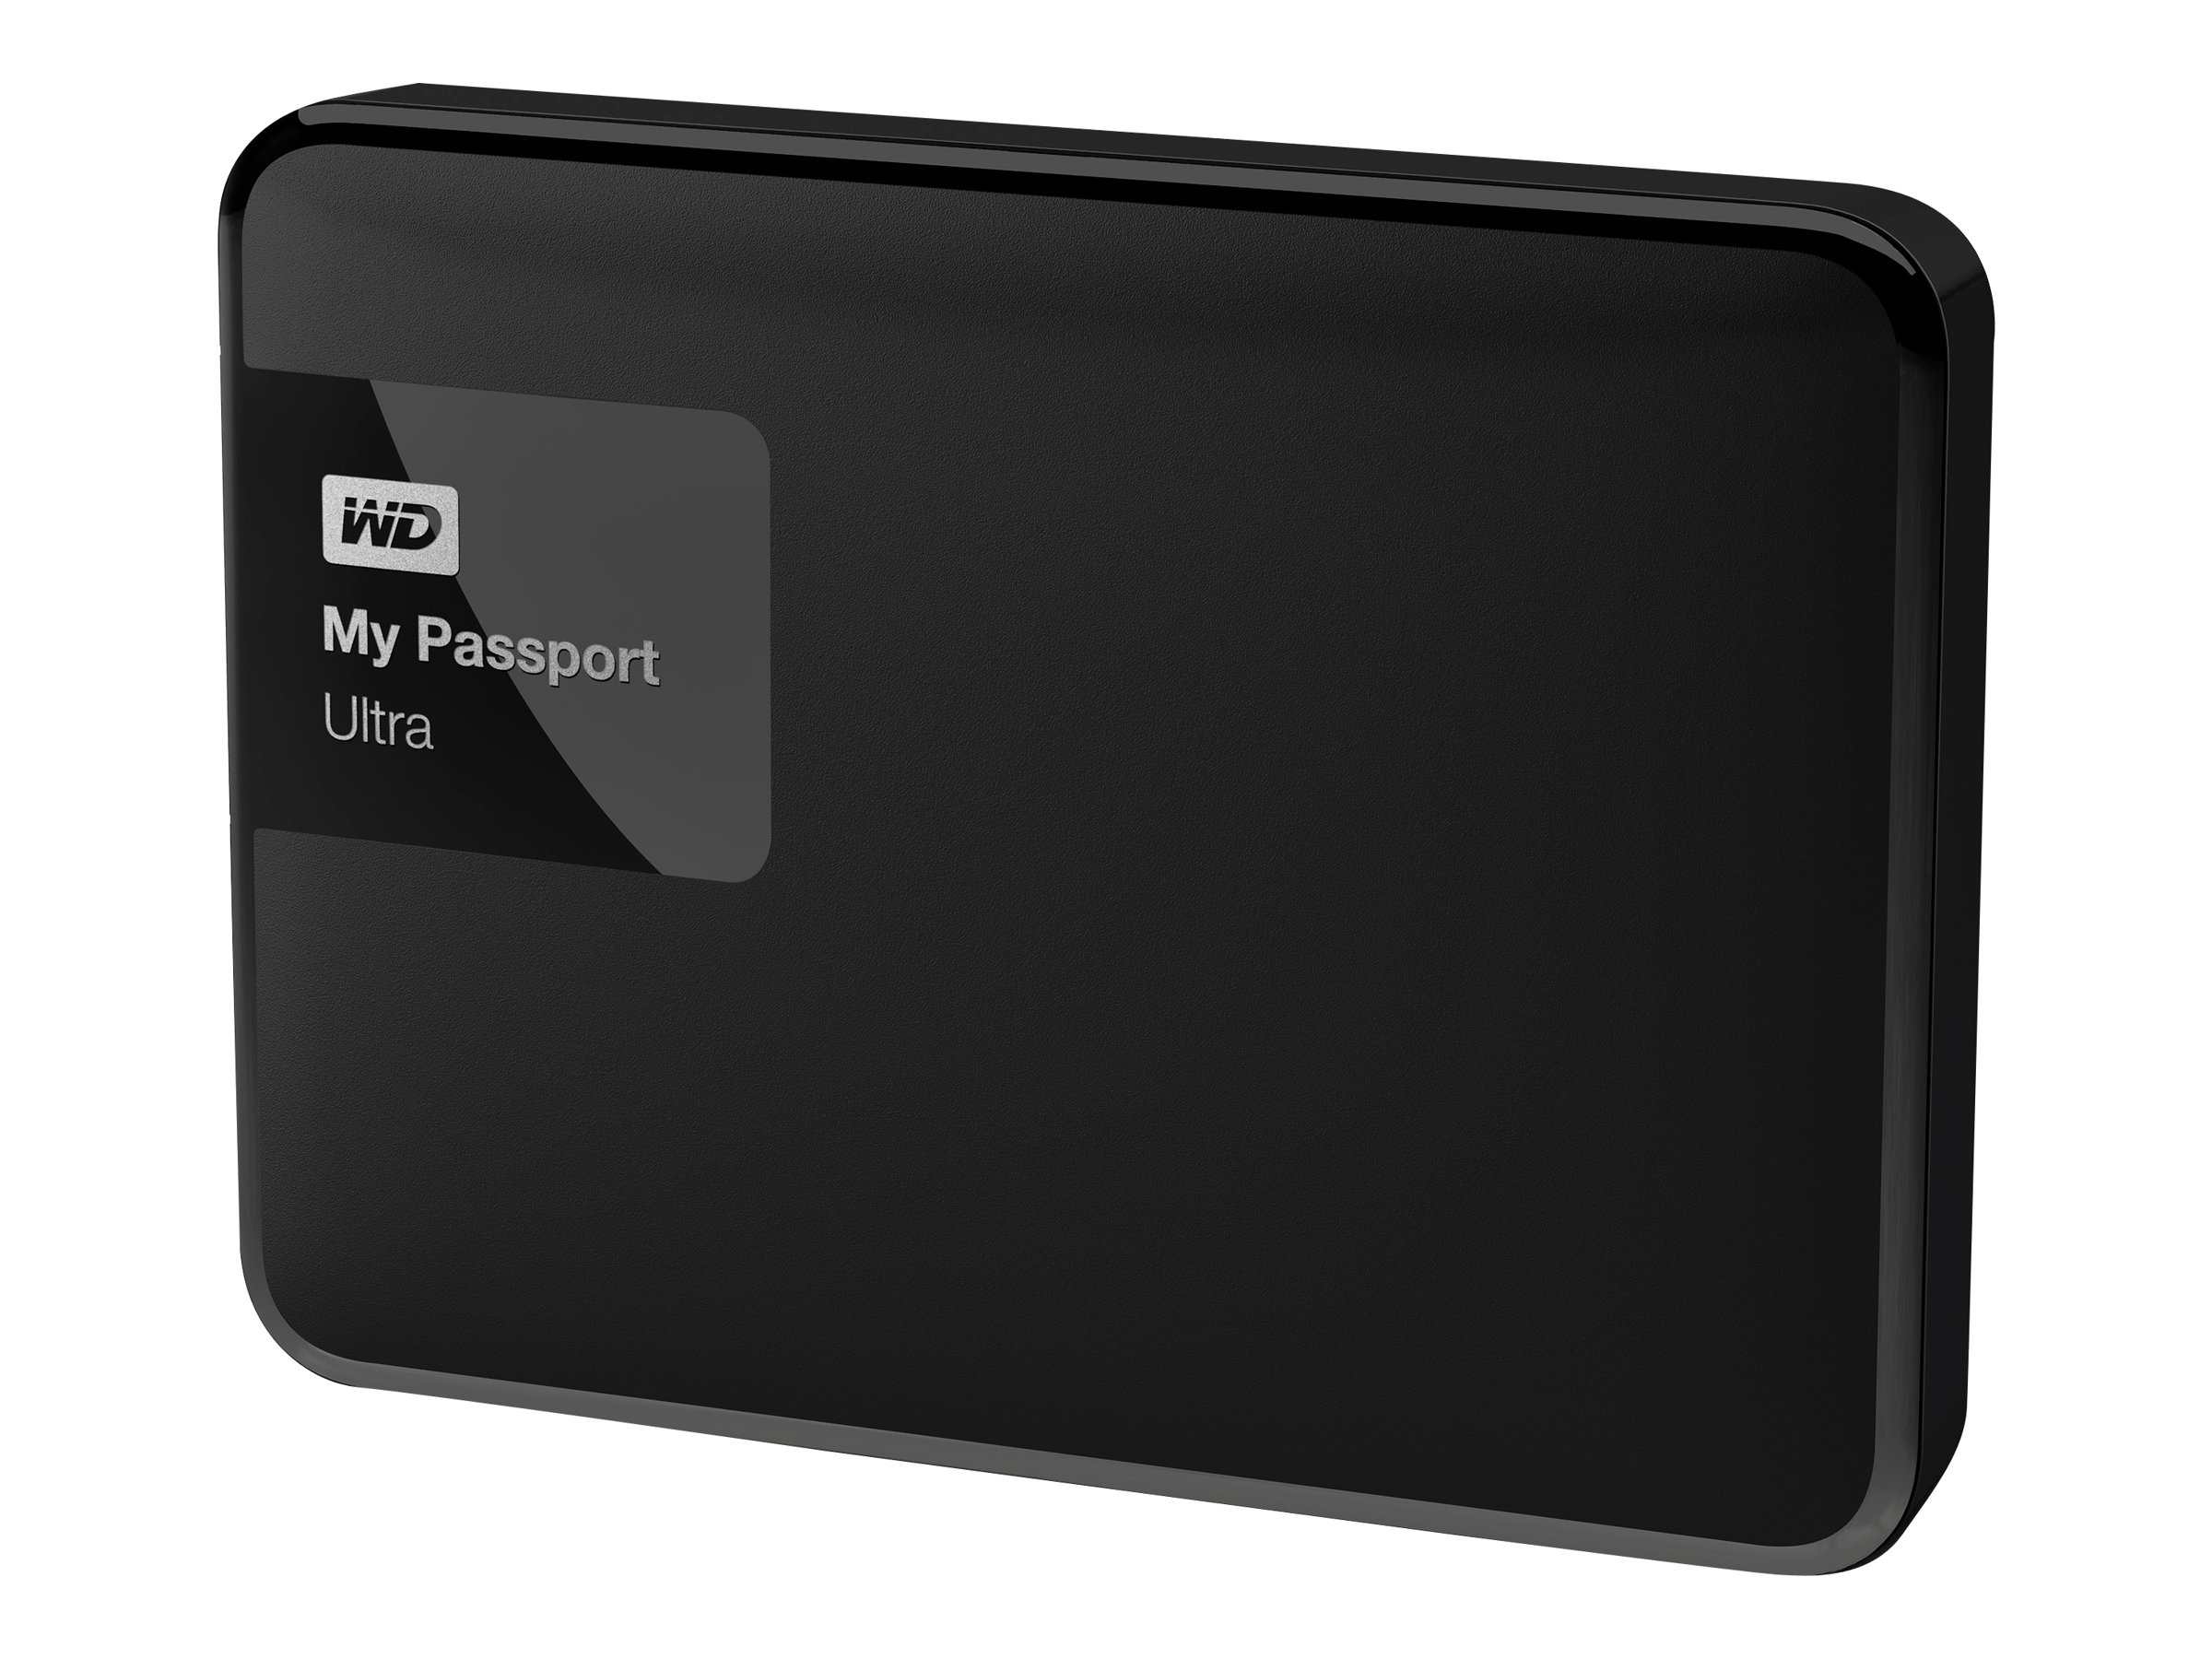 WD 2TB My Passport Ultra USB 3.0 Portable Hard Drive - Black, WDBBKD0020BBK-NESN